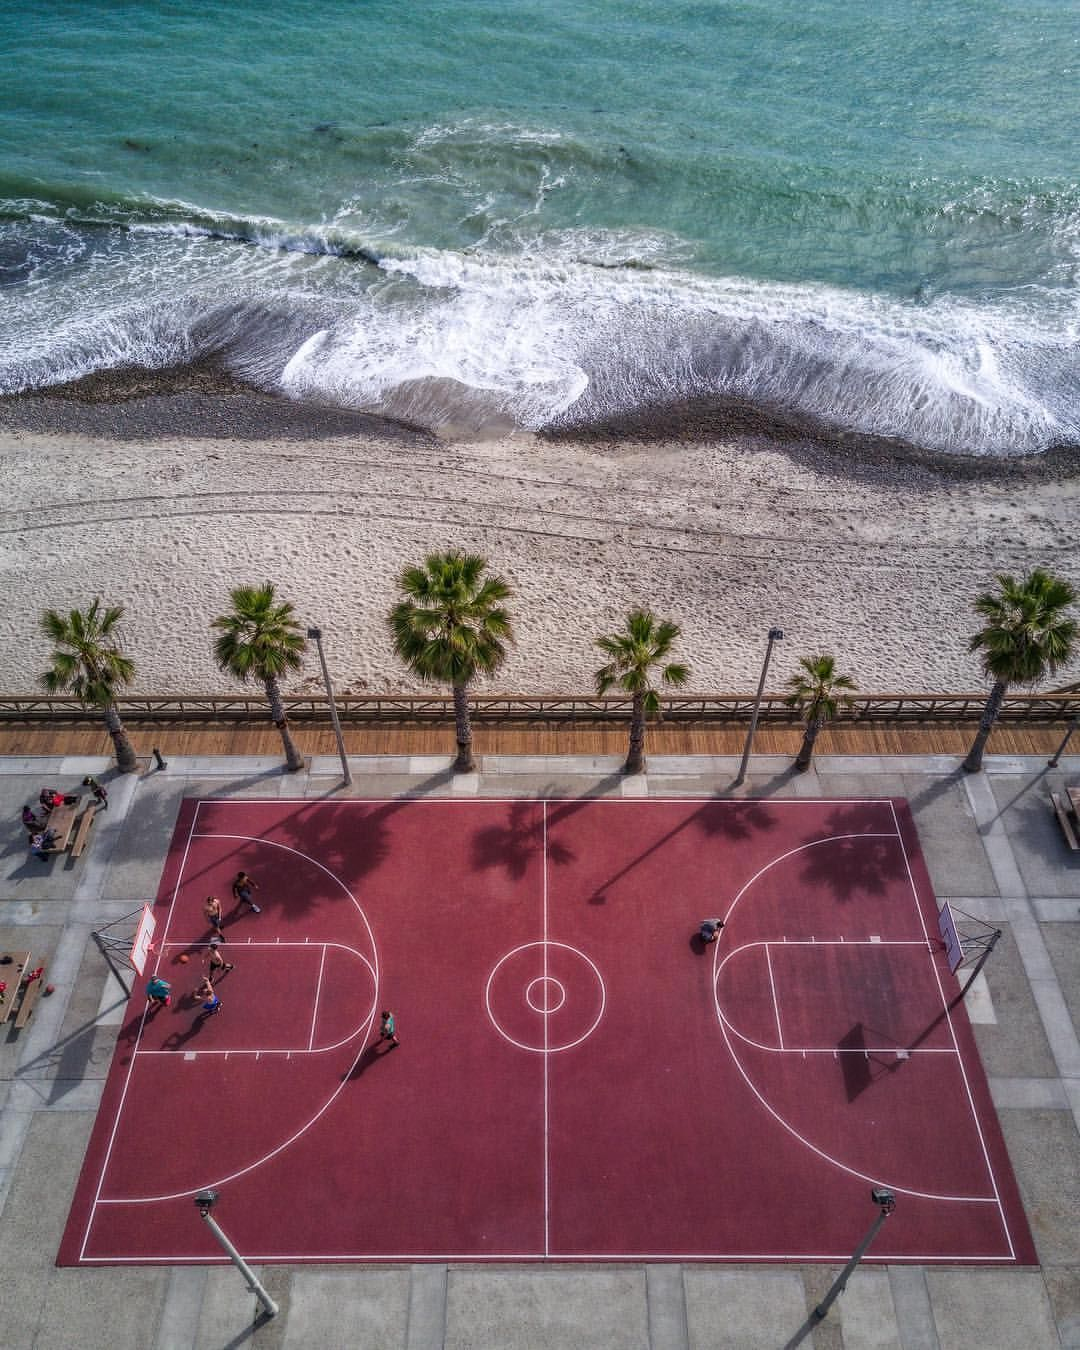 880 Beach Basketball Ideas Beach Basketball Basketball Beach